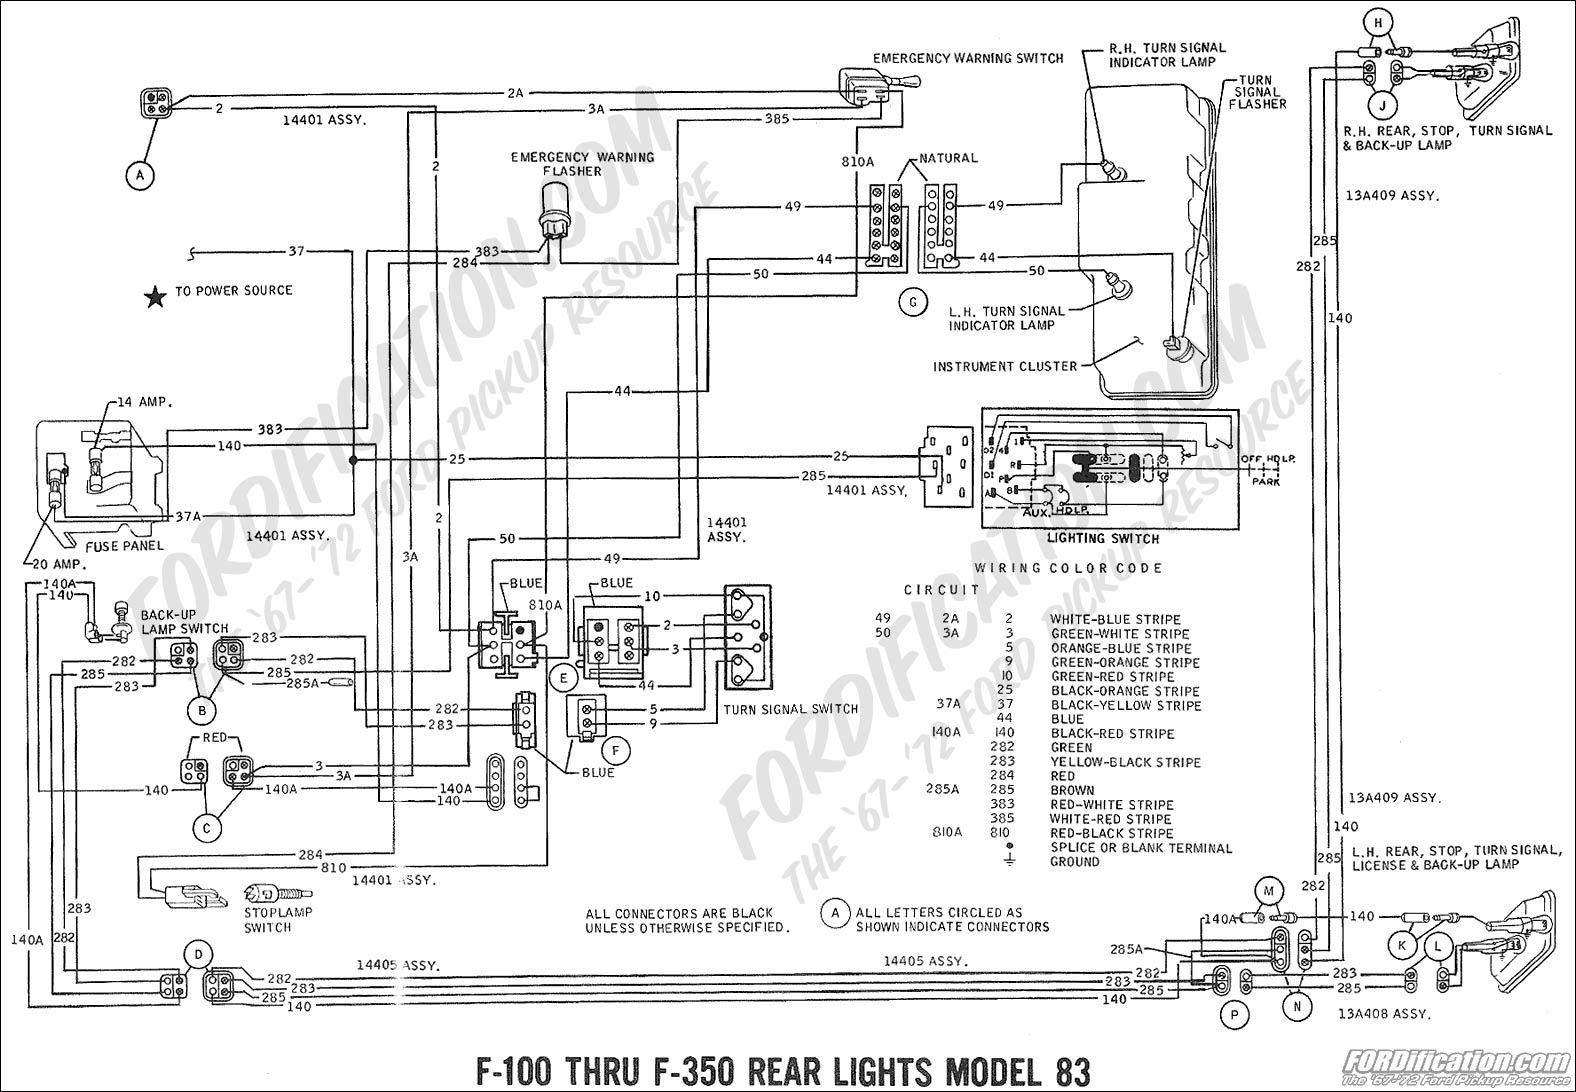 71 Ford Truck Wiring Diagram Diagrams 1979 F 150 Voltage Regulator Technical Drawings And Schematics Section H Rh Fordification Com